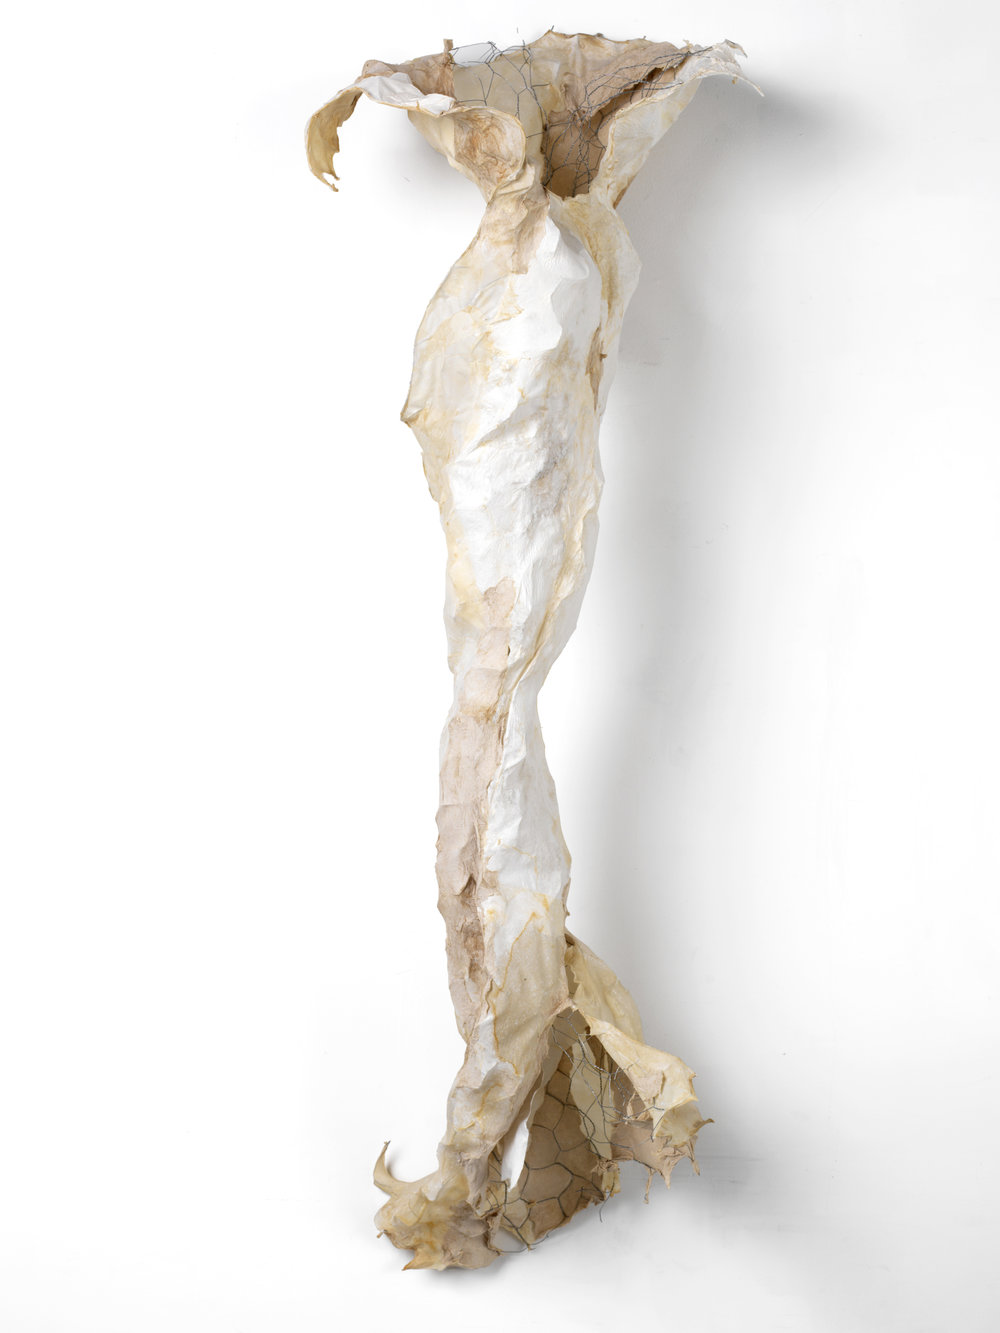 BONE RIBBON, 2016